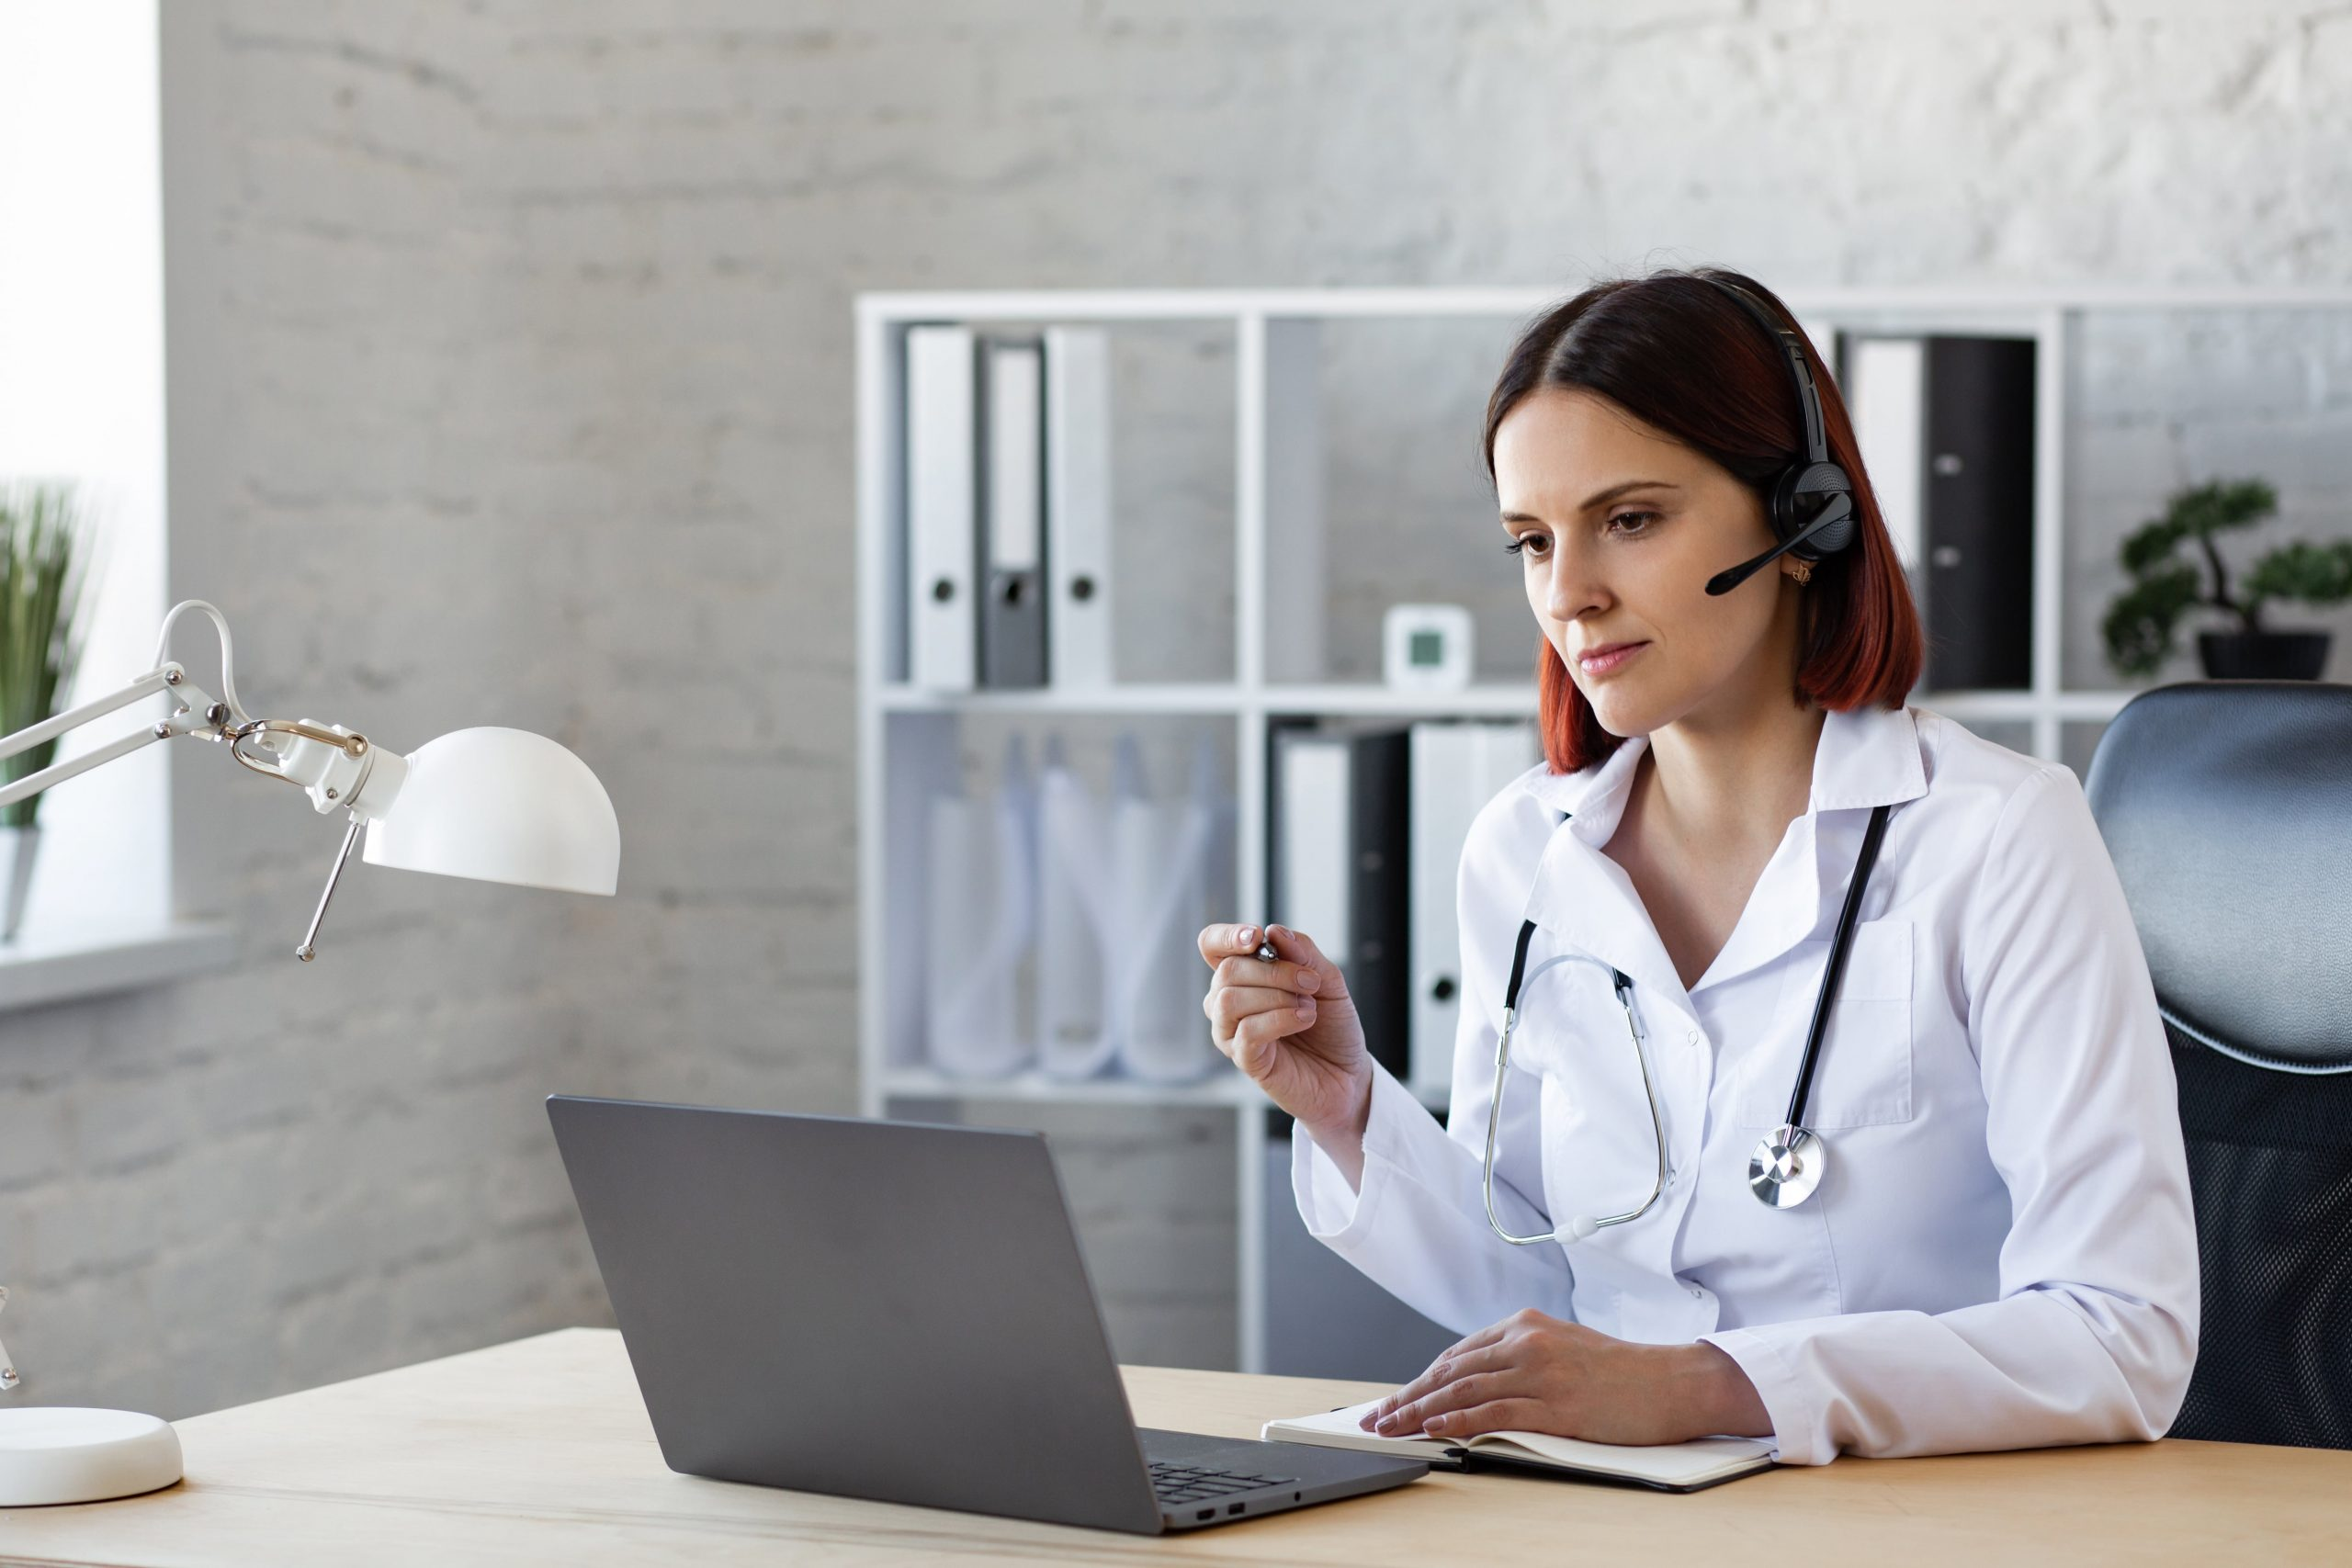 woman doctor consults by video call online medical assistance scaled